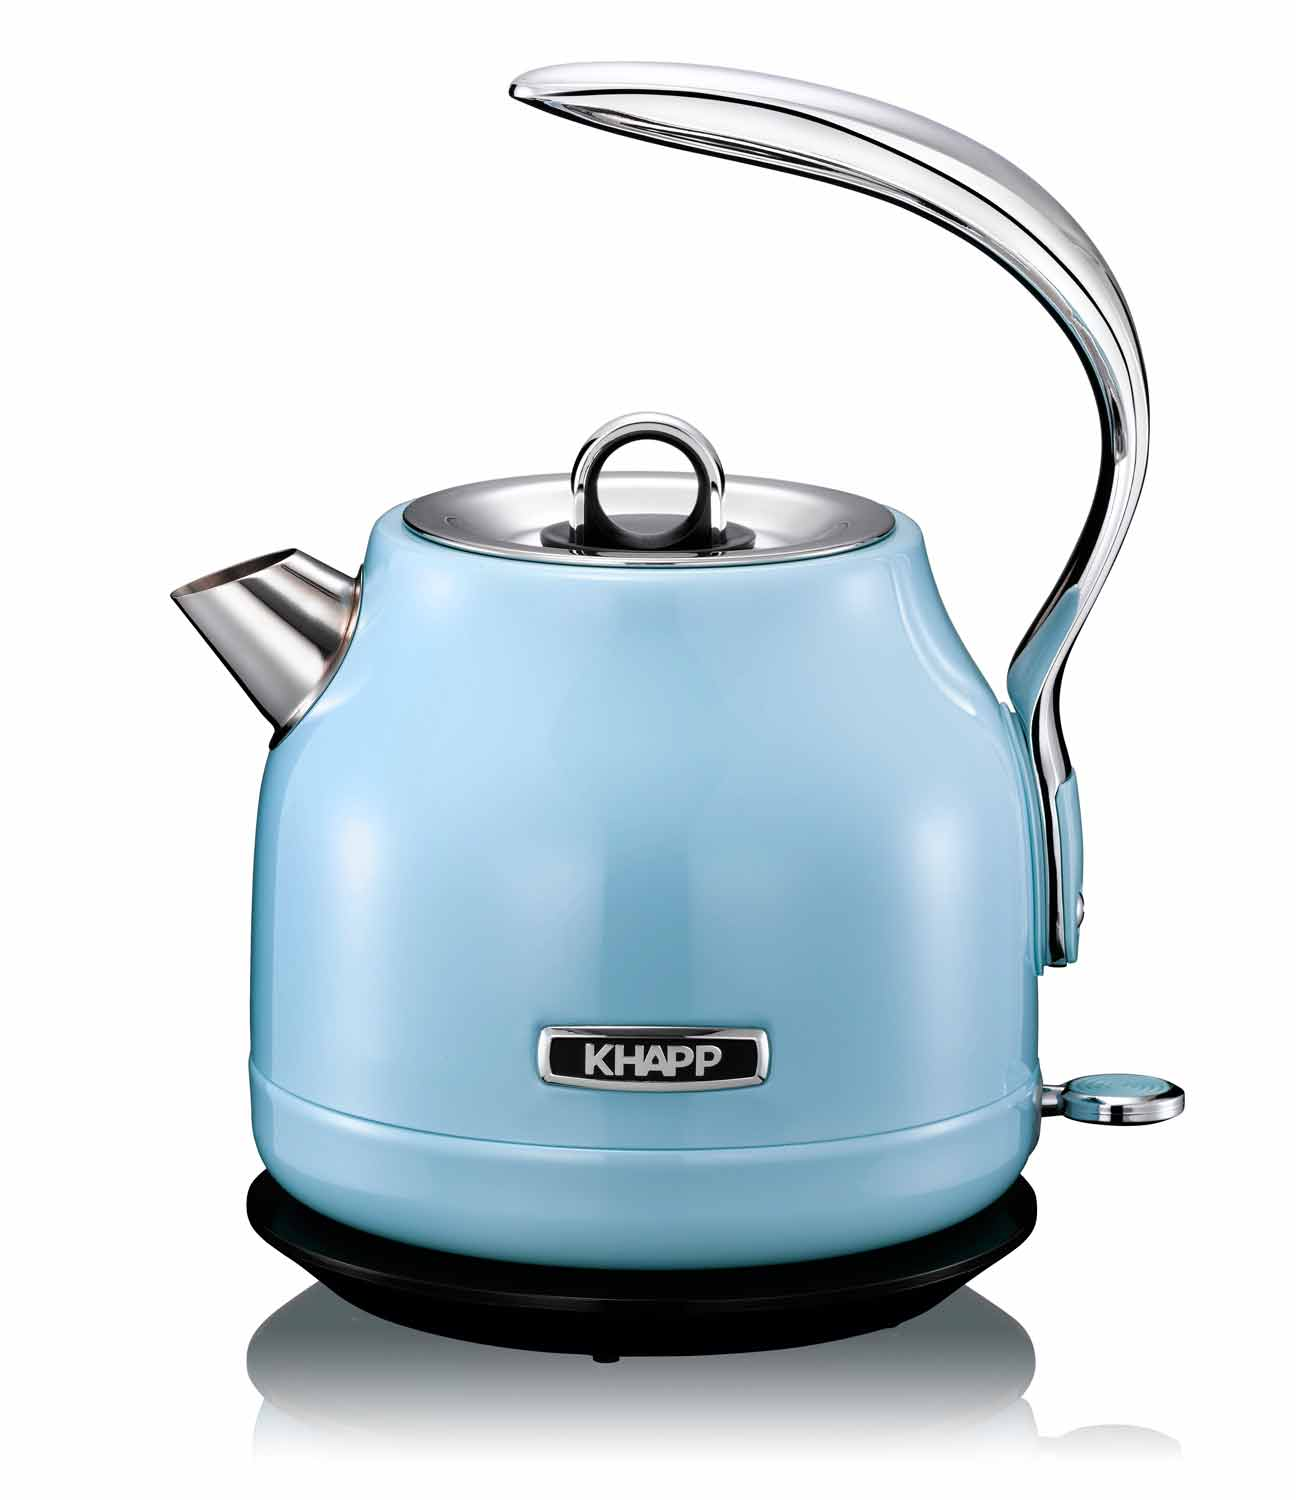 Retro design wasserkocher khapp 15130009 blau light blue for Wasserkocher retro design